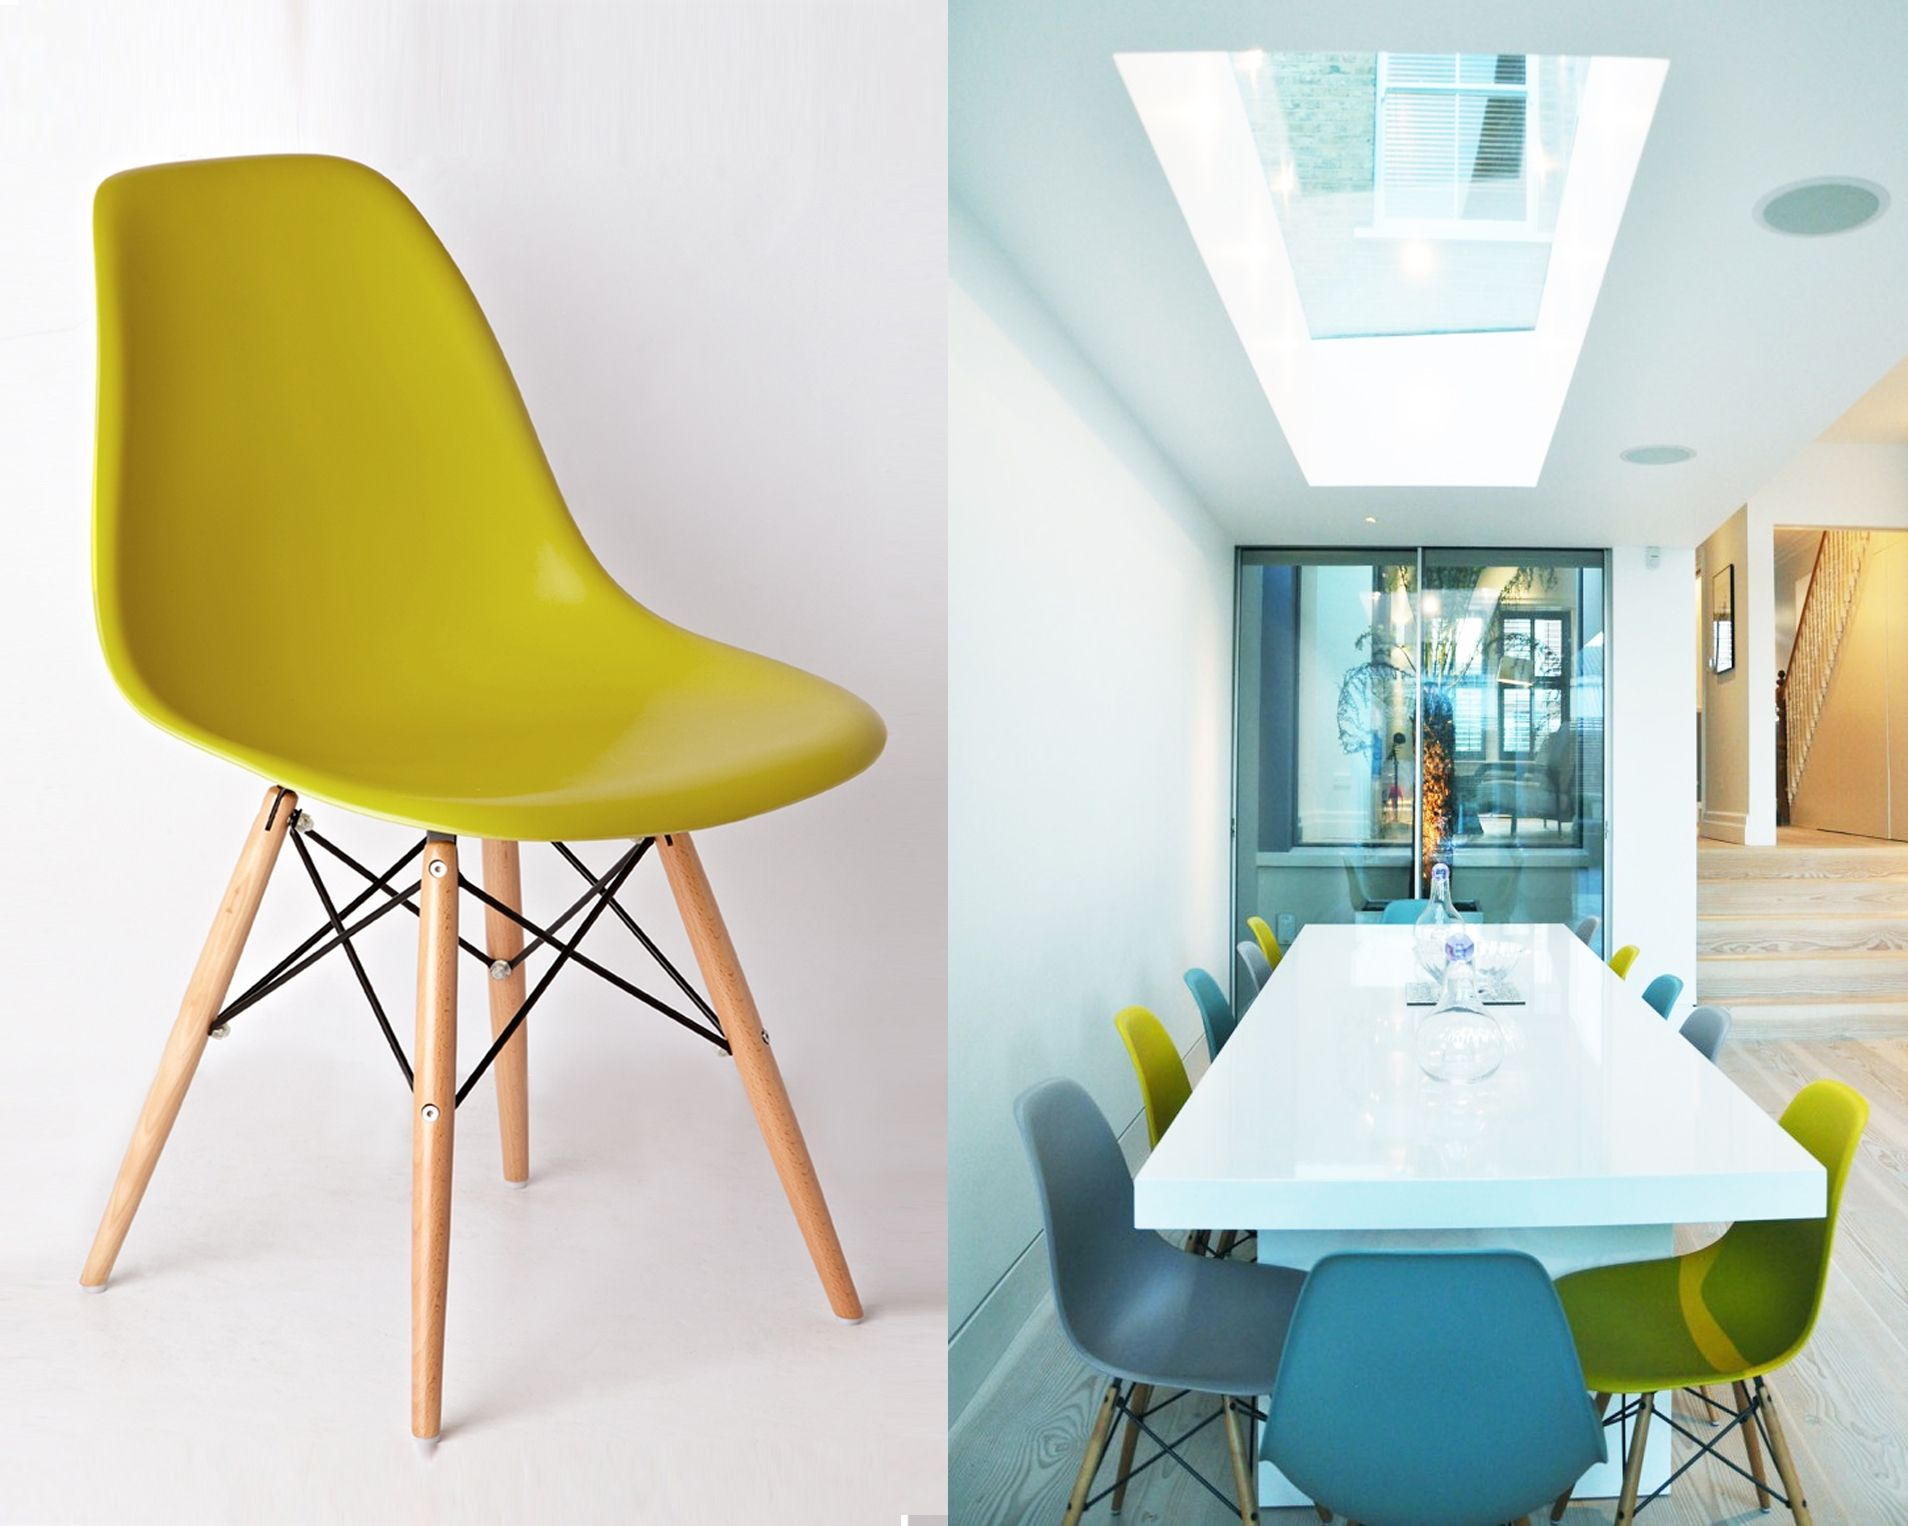 dining chairs on wheels. Funky Kitchen Dining Chairs - Casters Are Only Wheels That Connected To The Base Of An Item Like A Shopping Cart, Trolle On